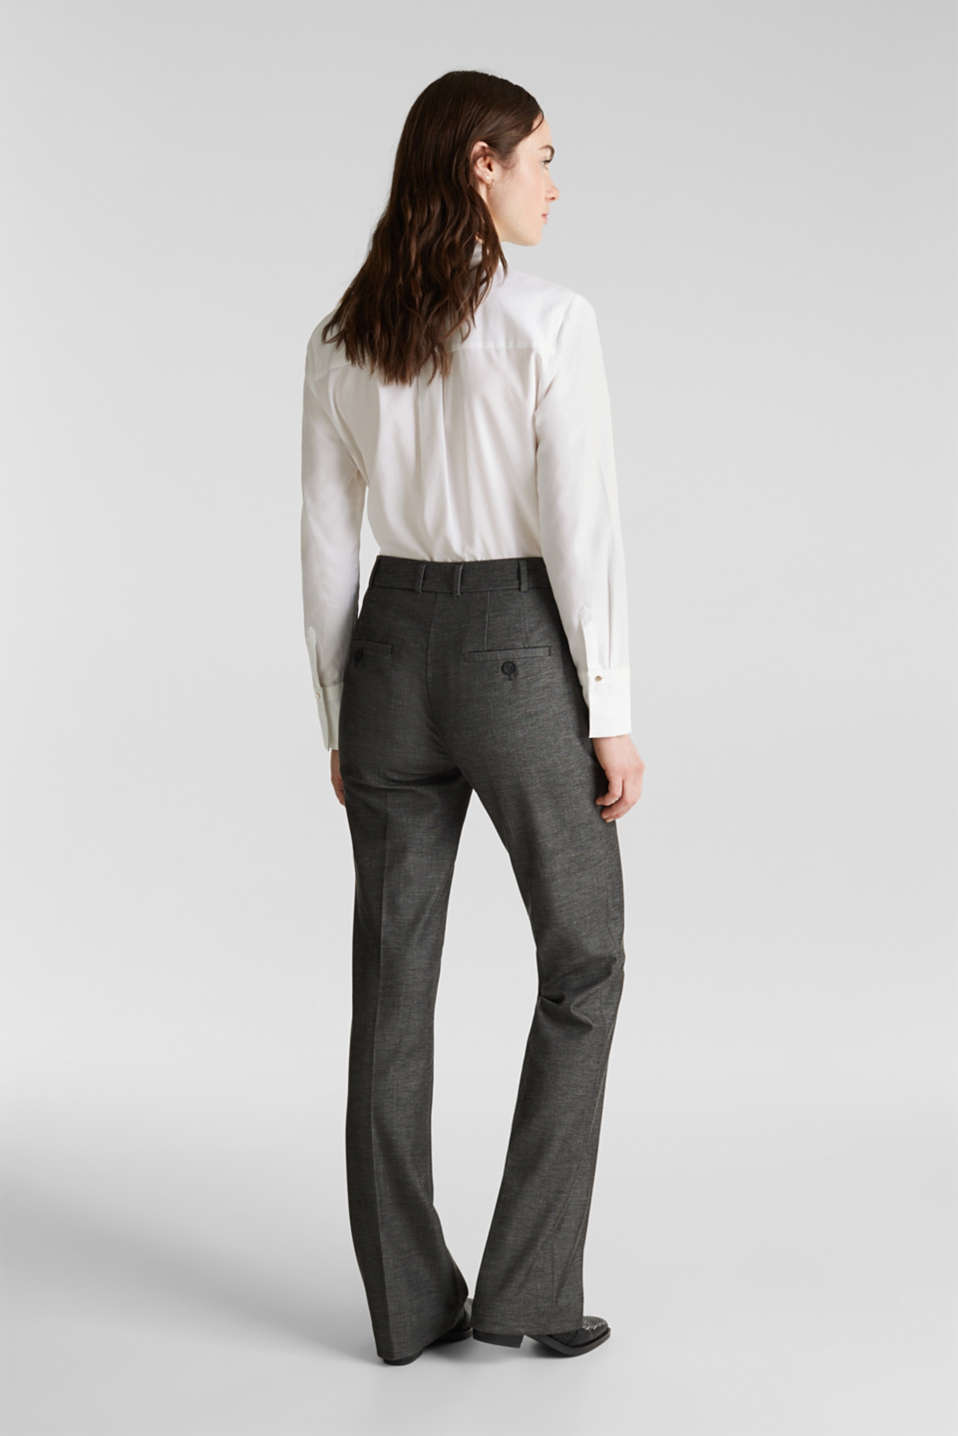 SHINY TEXTURE mix + match stretch trousers, DARK GREY 5, detail image number 3